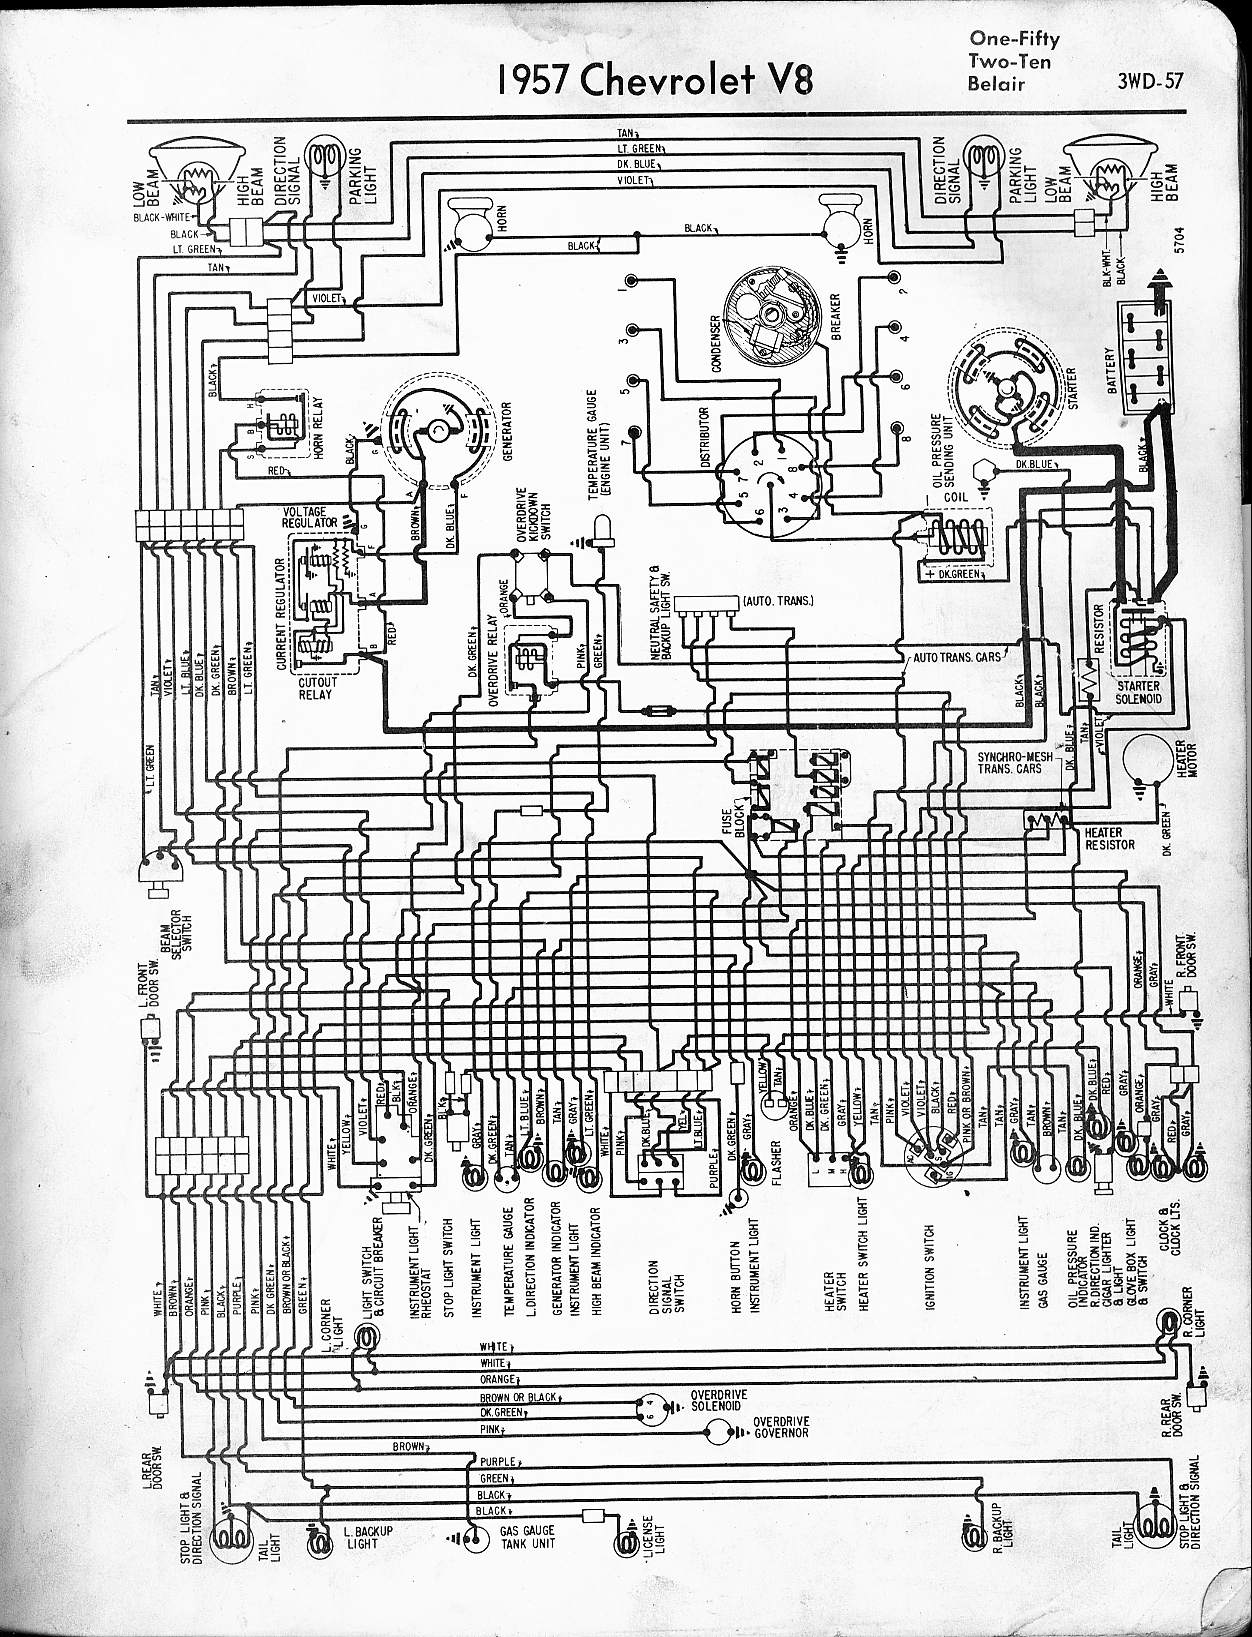 Wiring Diagram 57 Chevy Bel Air Opinions About Wiring Diagram \u2022 1957  Chevy Generator Wiring Dome Light Wiring Diagram 1957 Chevy Bel Air